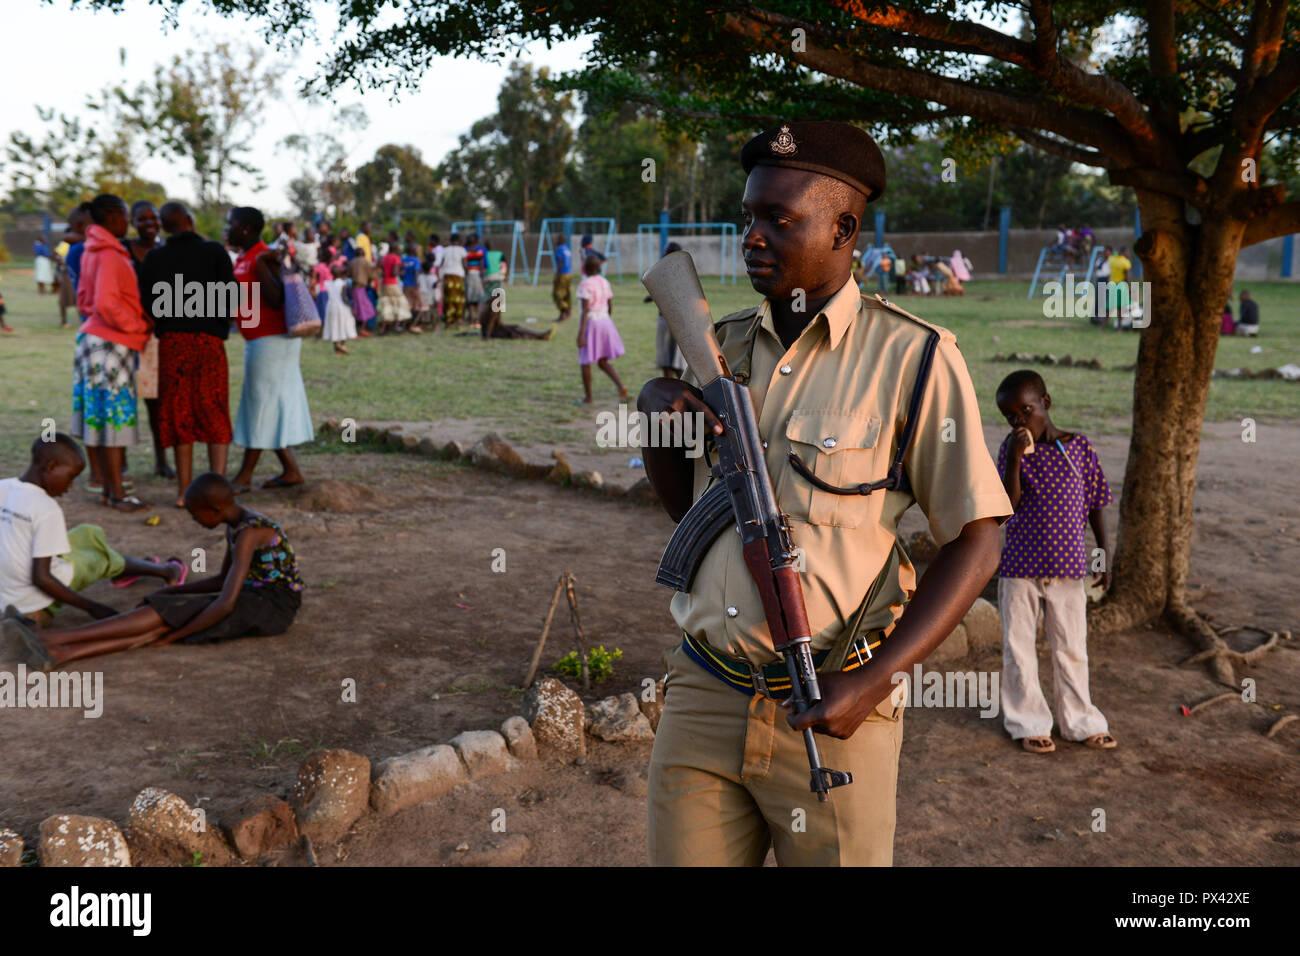 TANZANIA Mara, Tarime, village Masanga, region of the Kuria tribe who practise FGM Female Genital Mutilation, temporary rescue camp of the Diocese Musoma for girls which escaped from their villages to prevent FGM, , armed police secure the camp published in misso magazine 5/2015 - Stock Image